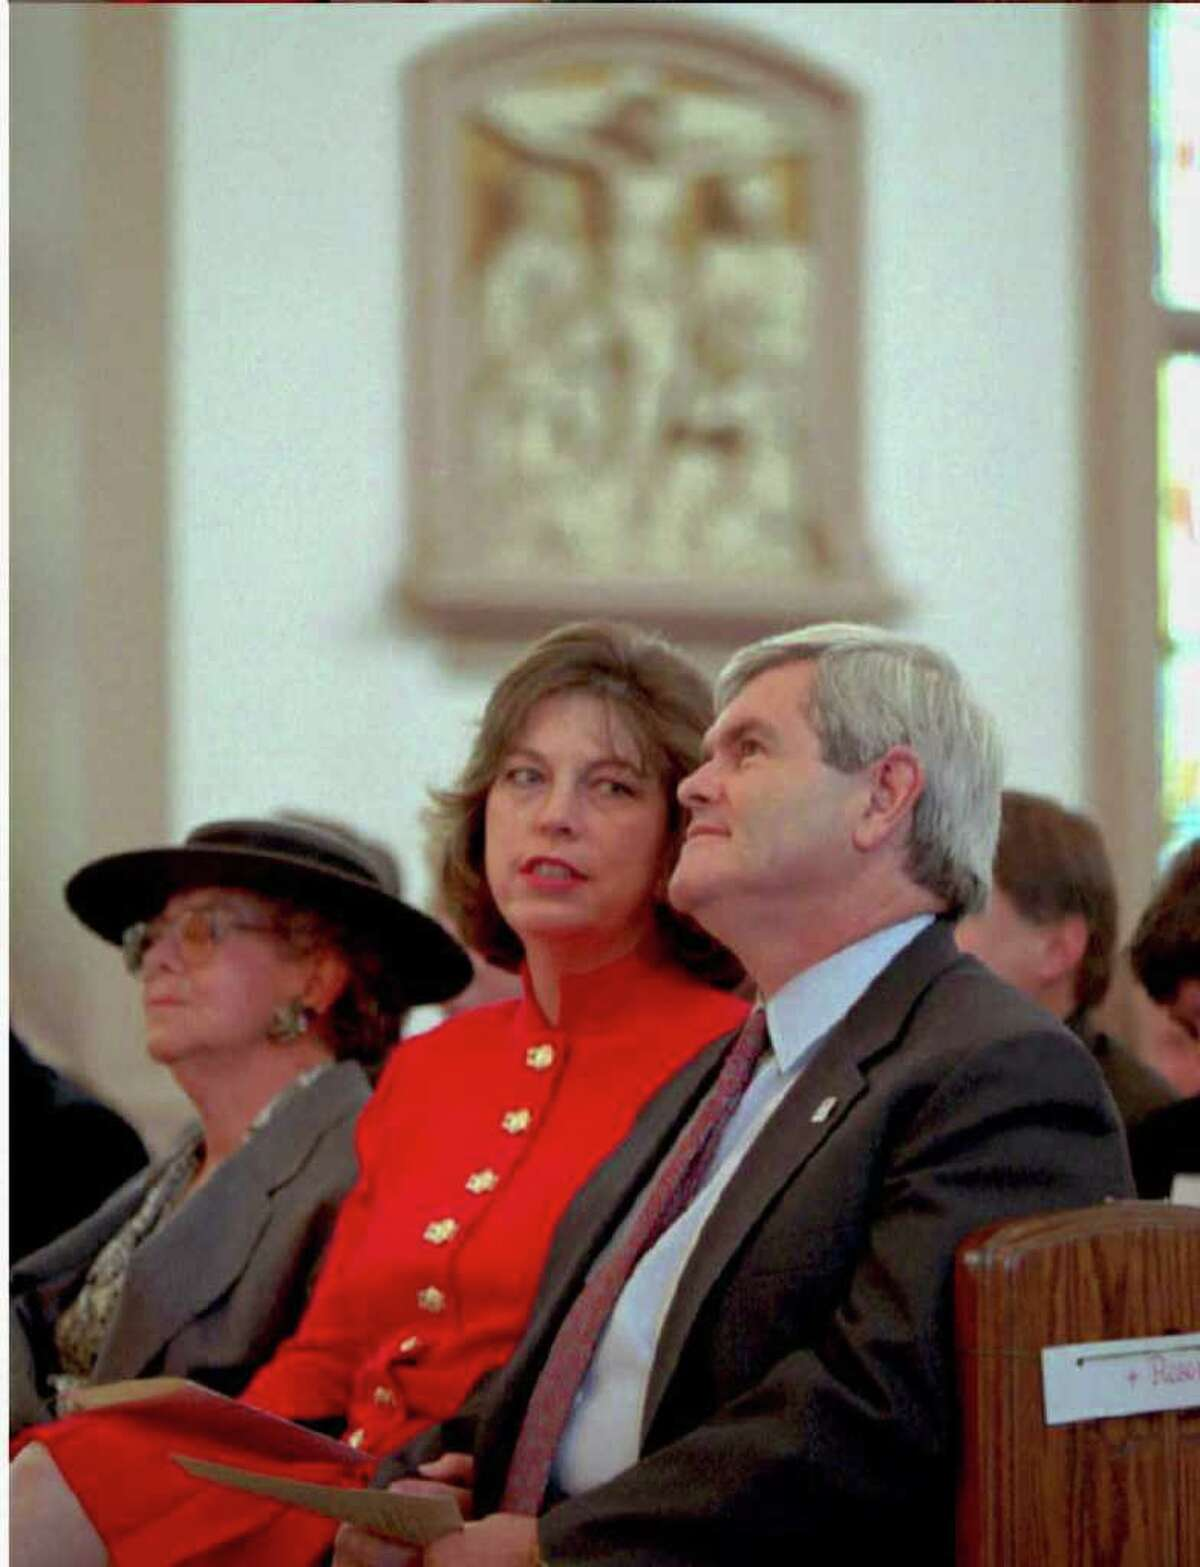 """Newt Gingrich: The House Speaker is at church service with wife No. 2, Marianne. He later asked for a divorce, and 48 hours later lectured on """"The Demise of American Culture"""" with multiple references to """"God, families and values."""""""